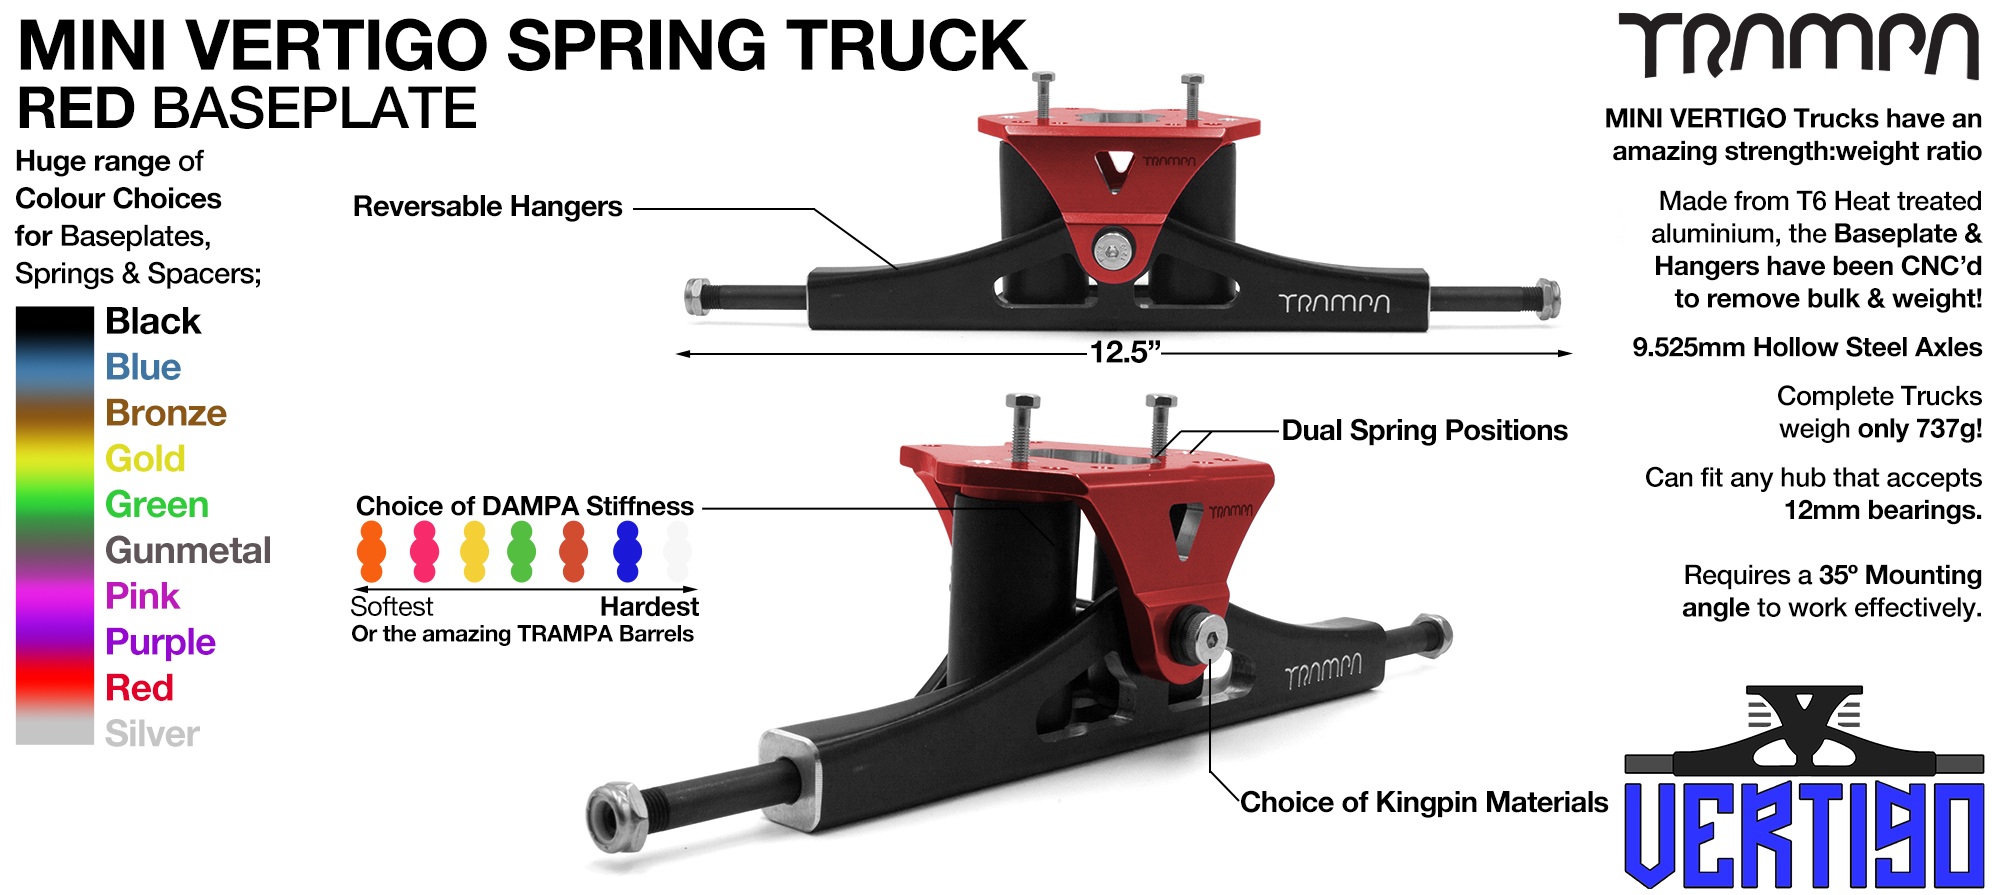 Mini VERTIGO TRAMPA TRUCKS - CNC FORGED Channel Hanger with 9.525mm HOLLOW Steel Axle CNC Baseplate Stainless Steel Kingpin - RED